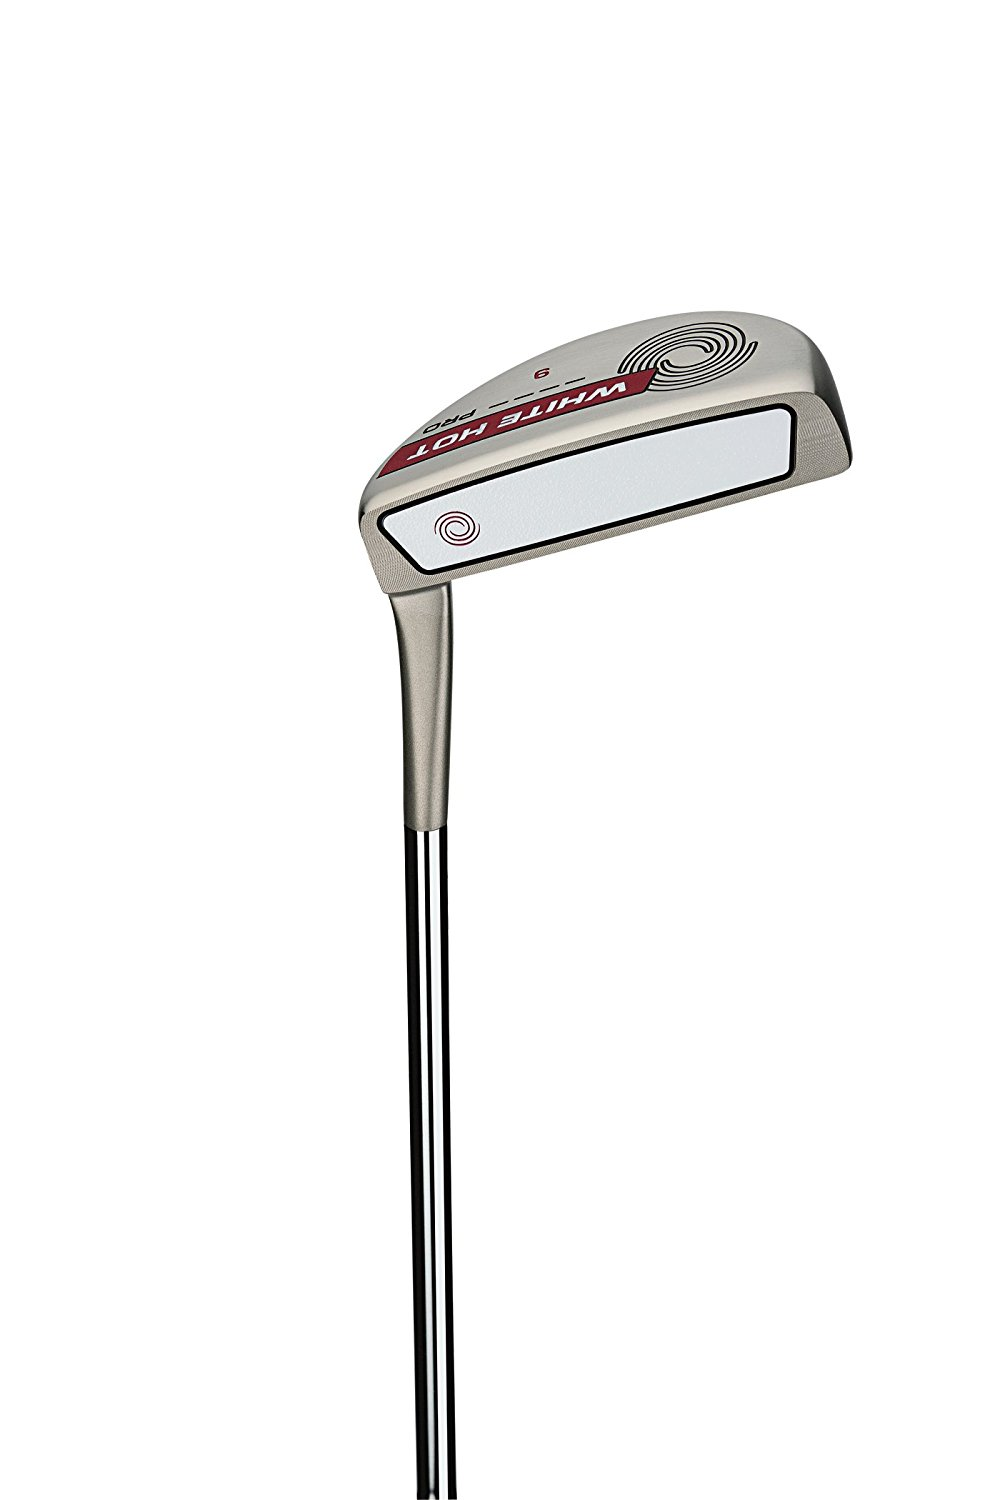 Odyssey Hot Pro 2.0 #9 Putter Review